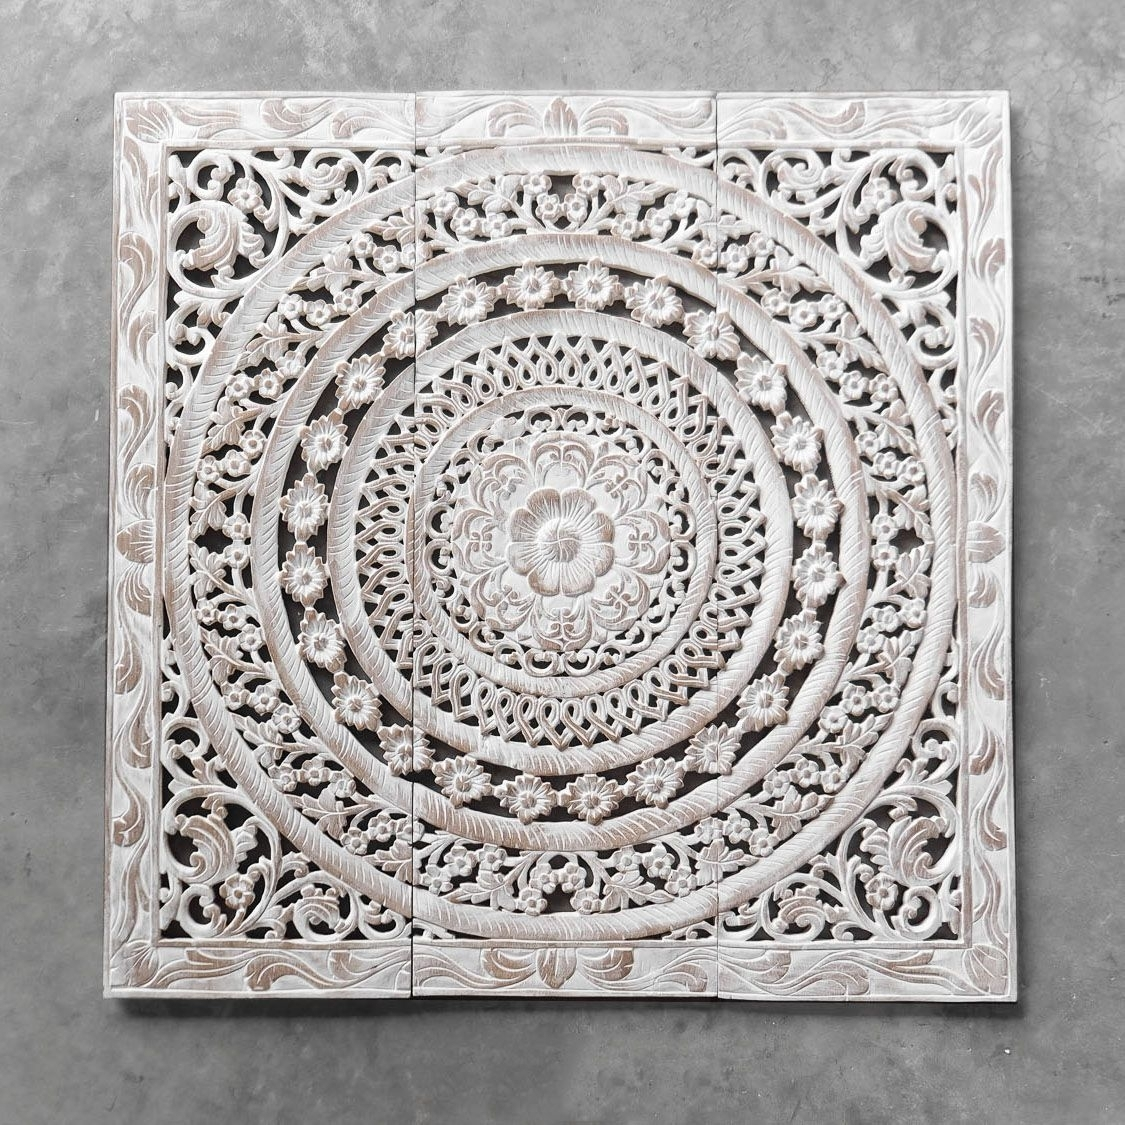 Wood Carved Wall Art Moroccan Decent Wood Carving Wall Art Hanging With Regard To Newest Wood Carved Wall Art (View 20 of 20)